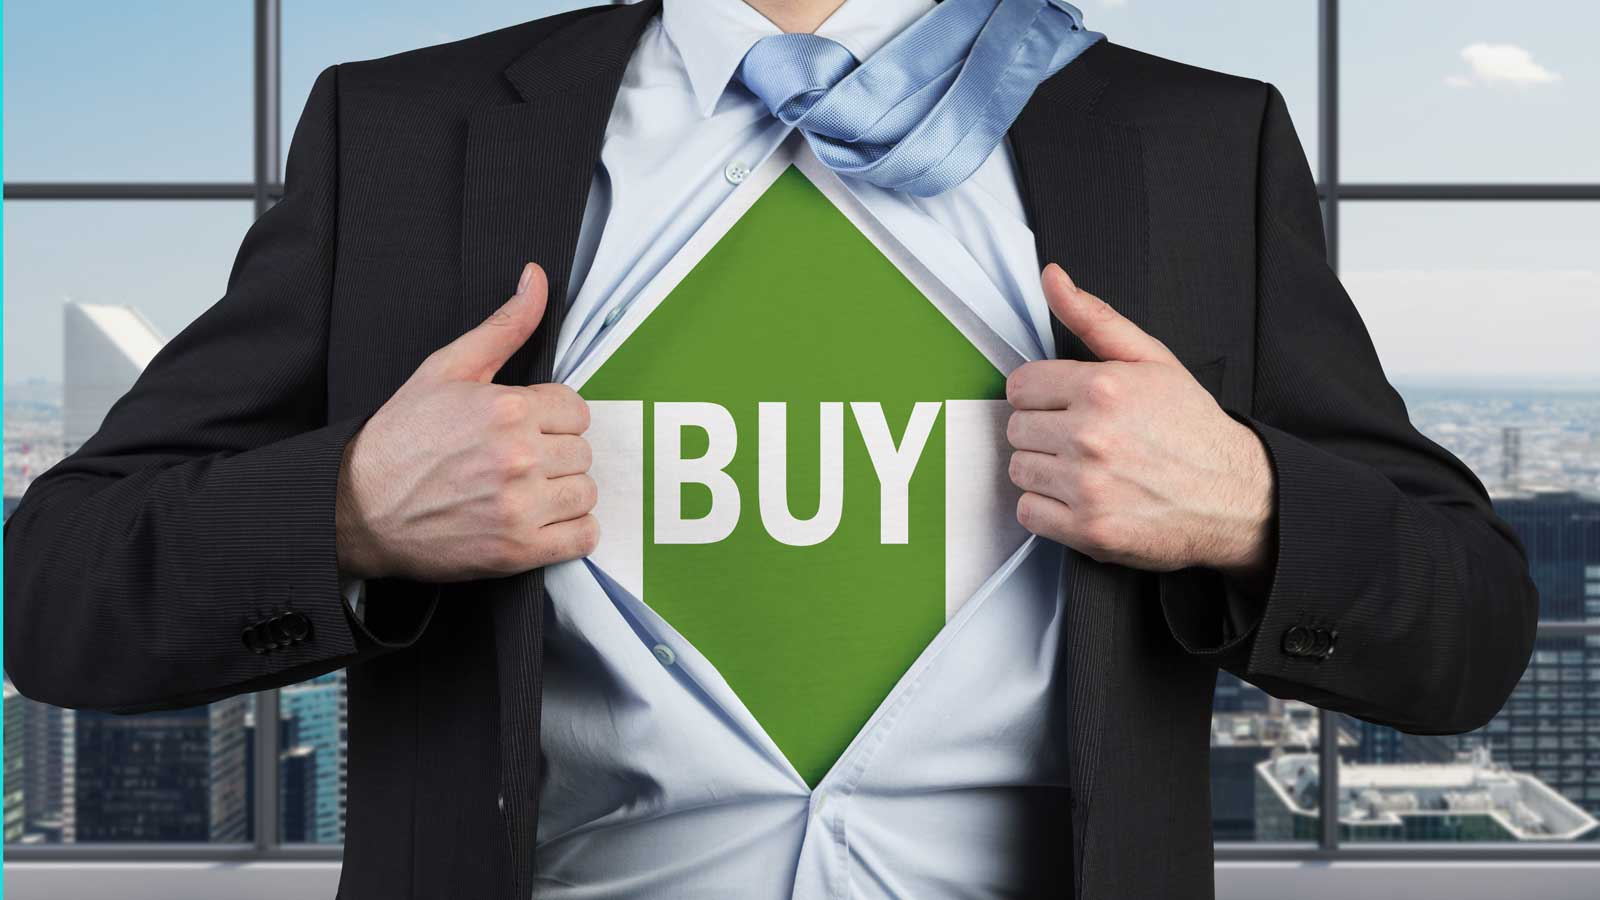 7 High Quality Stocks To Buy That Are Trading Below Fair Value Investorplace